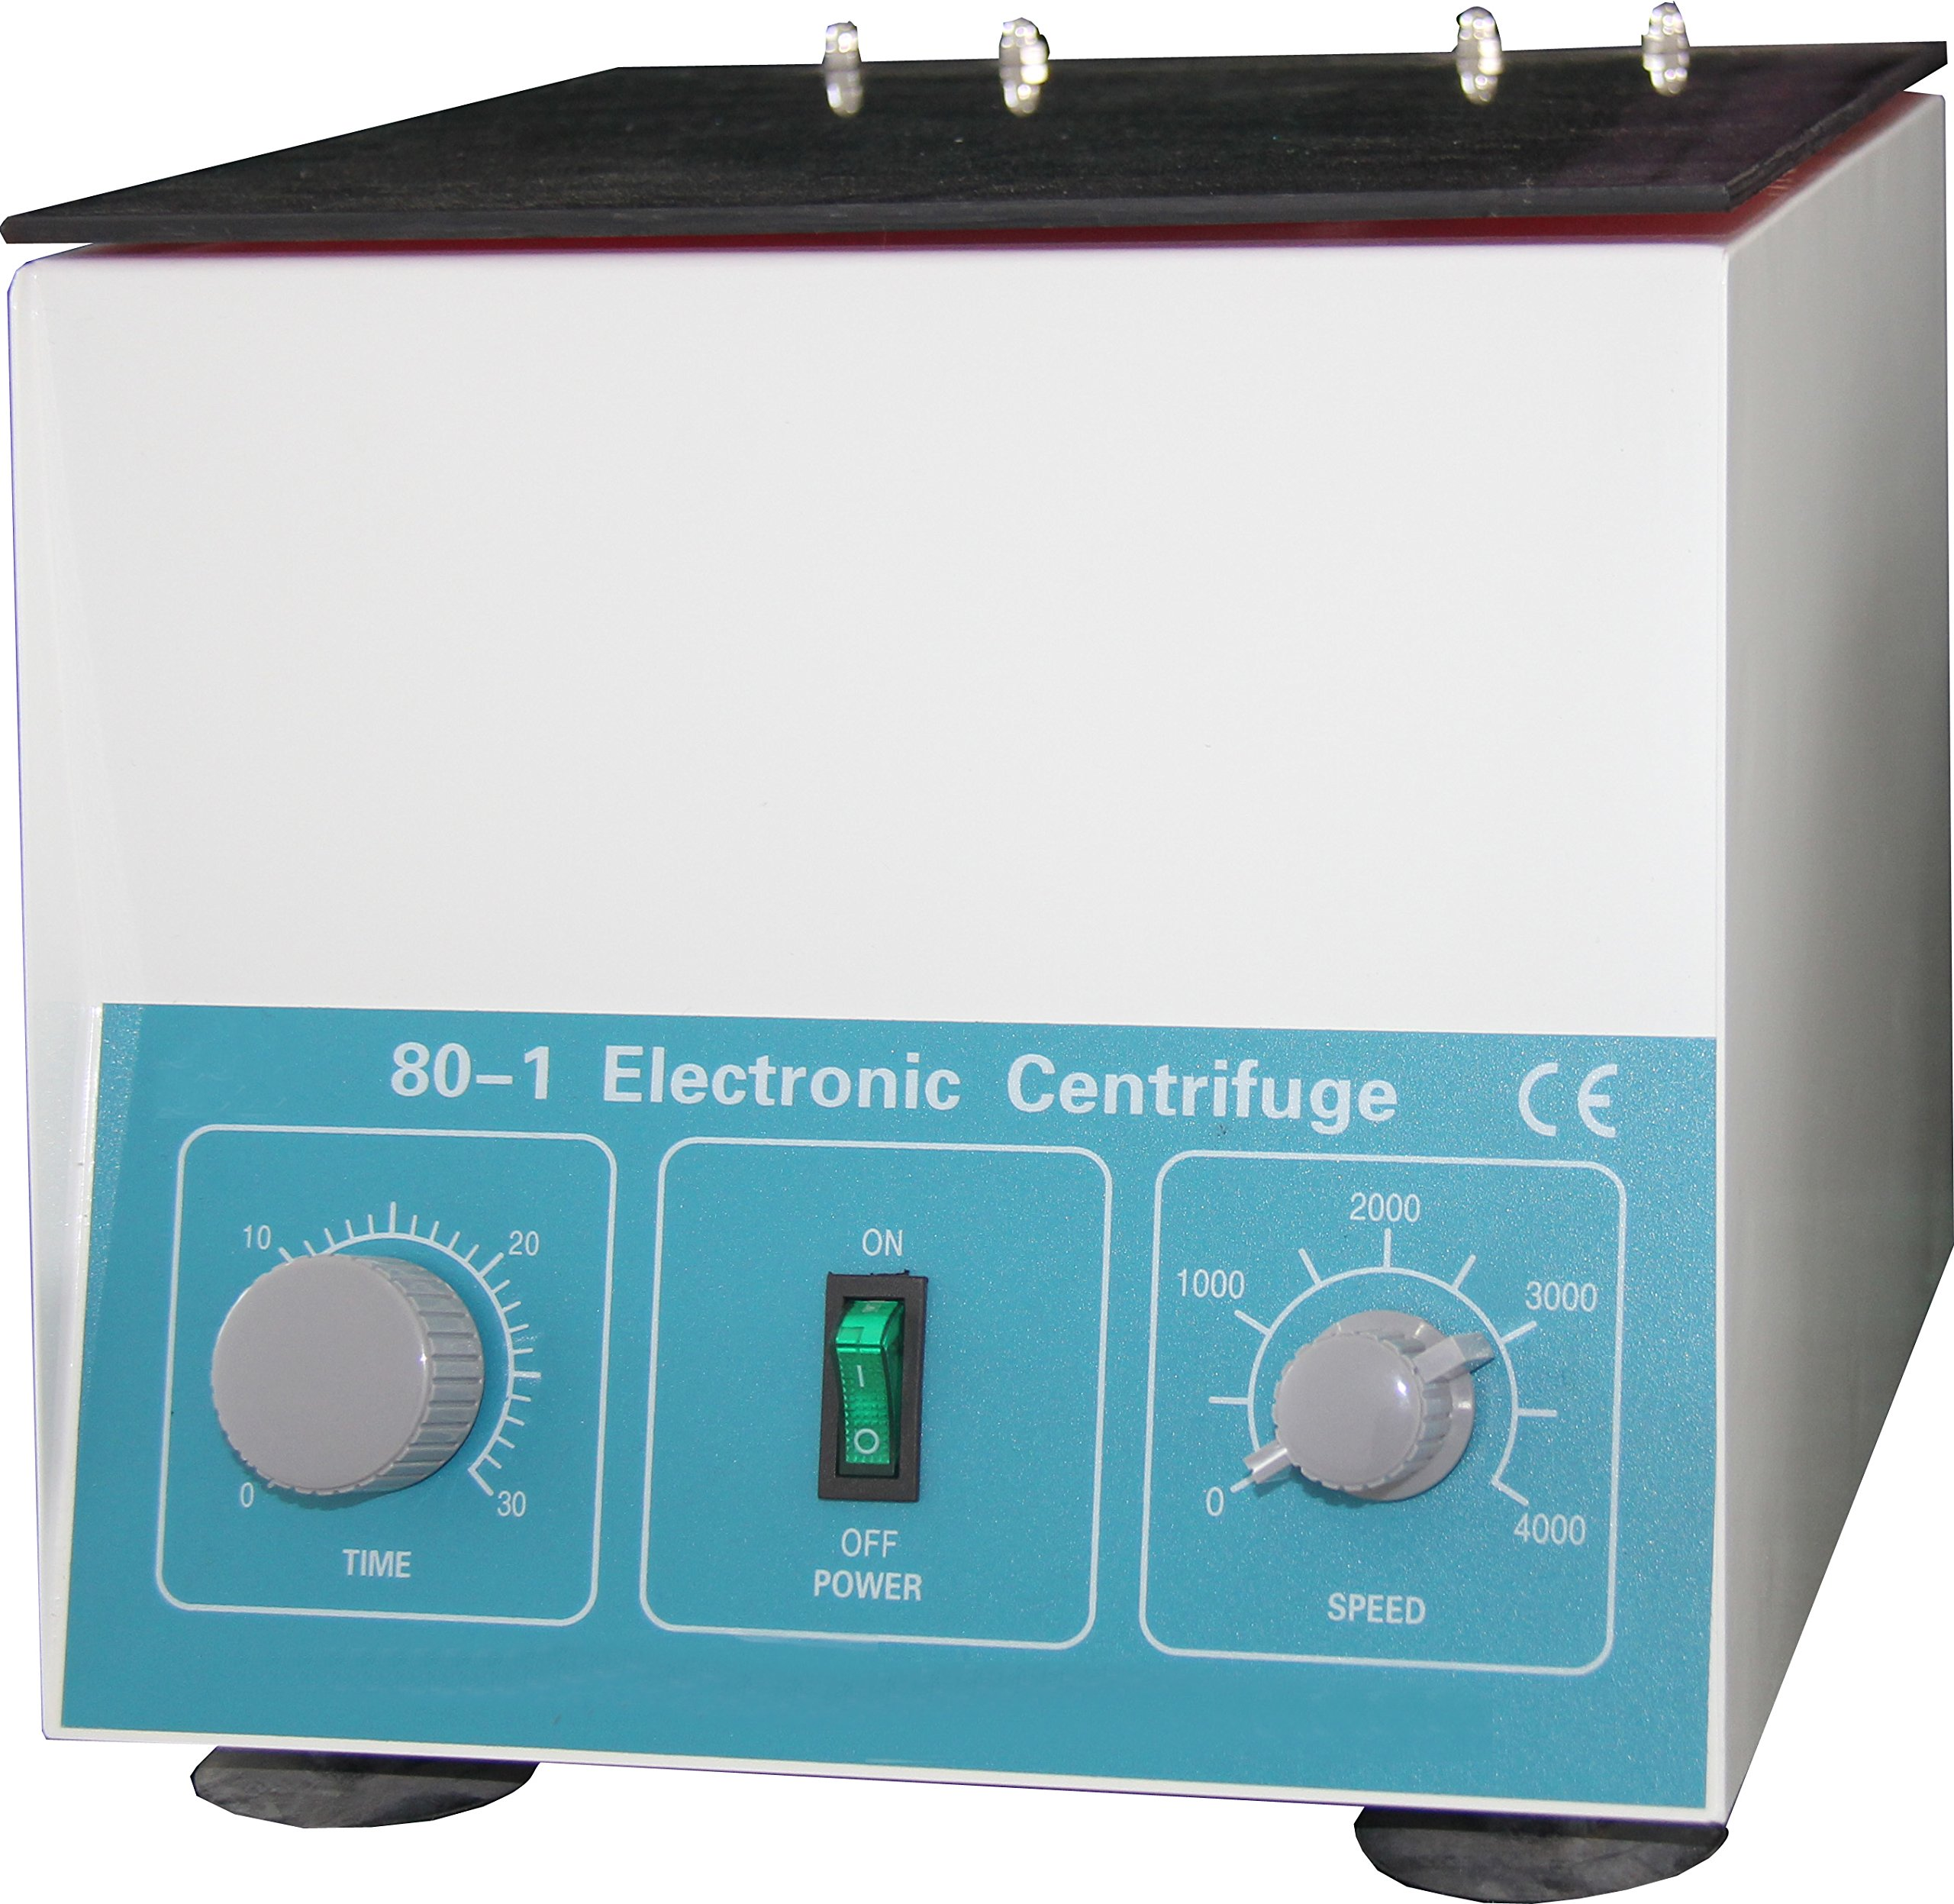 HFS (R) New Desktop Electric Centrifuge Lab (Timer 0-30min) Speed: 0-4000 Rpm, Cap:20ml X 6 Tube (80-1) 110v/60hz by Hardware Factory Store (Image #1)